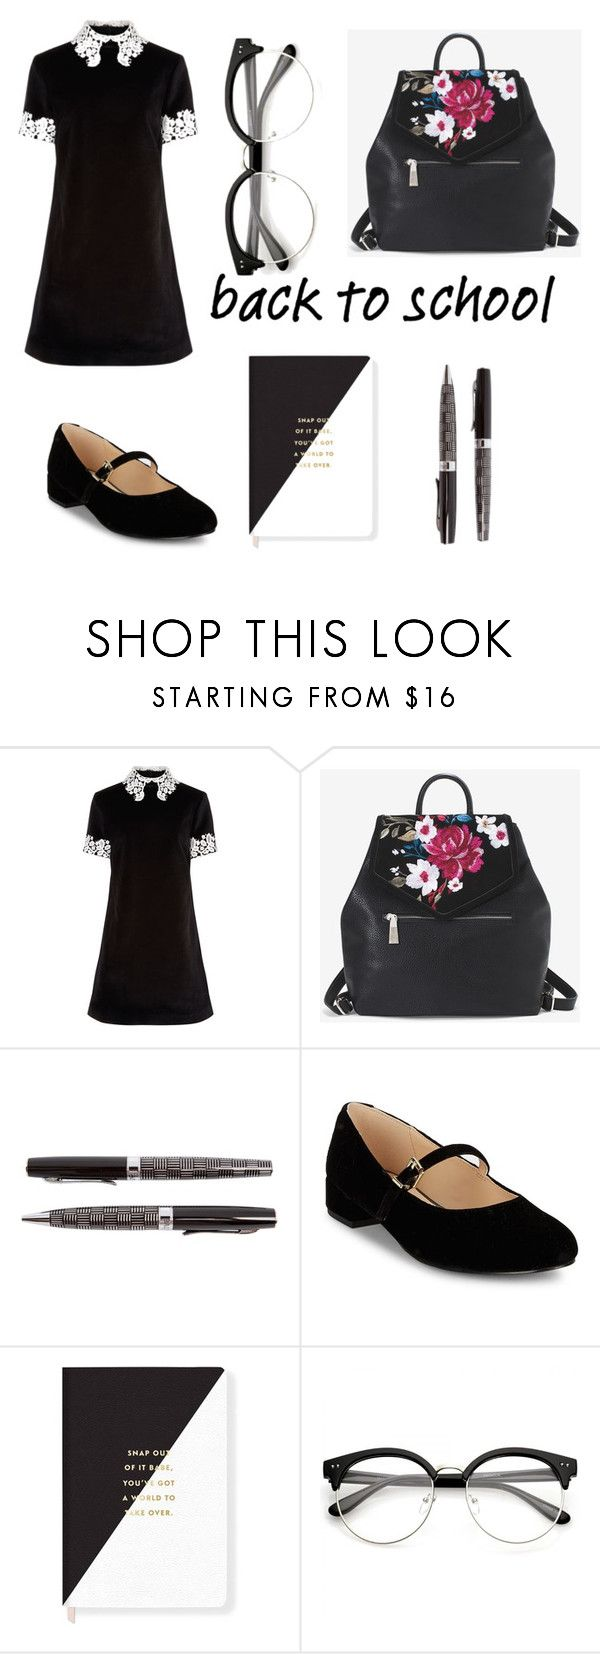 """dress code?....Na"" by oops-ally on Polyvore featuring macgraw, White House Black Market, Balmain, Isaac Mizrahi and Forever 21"